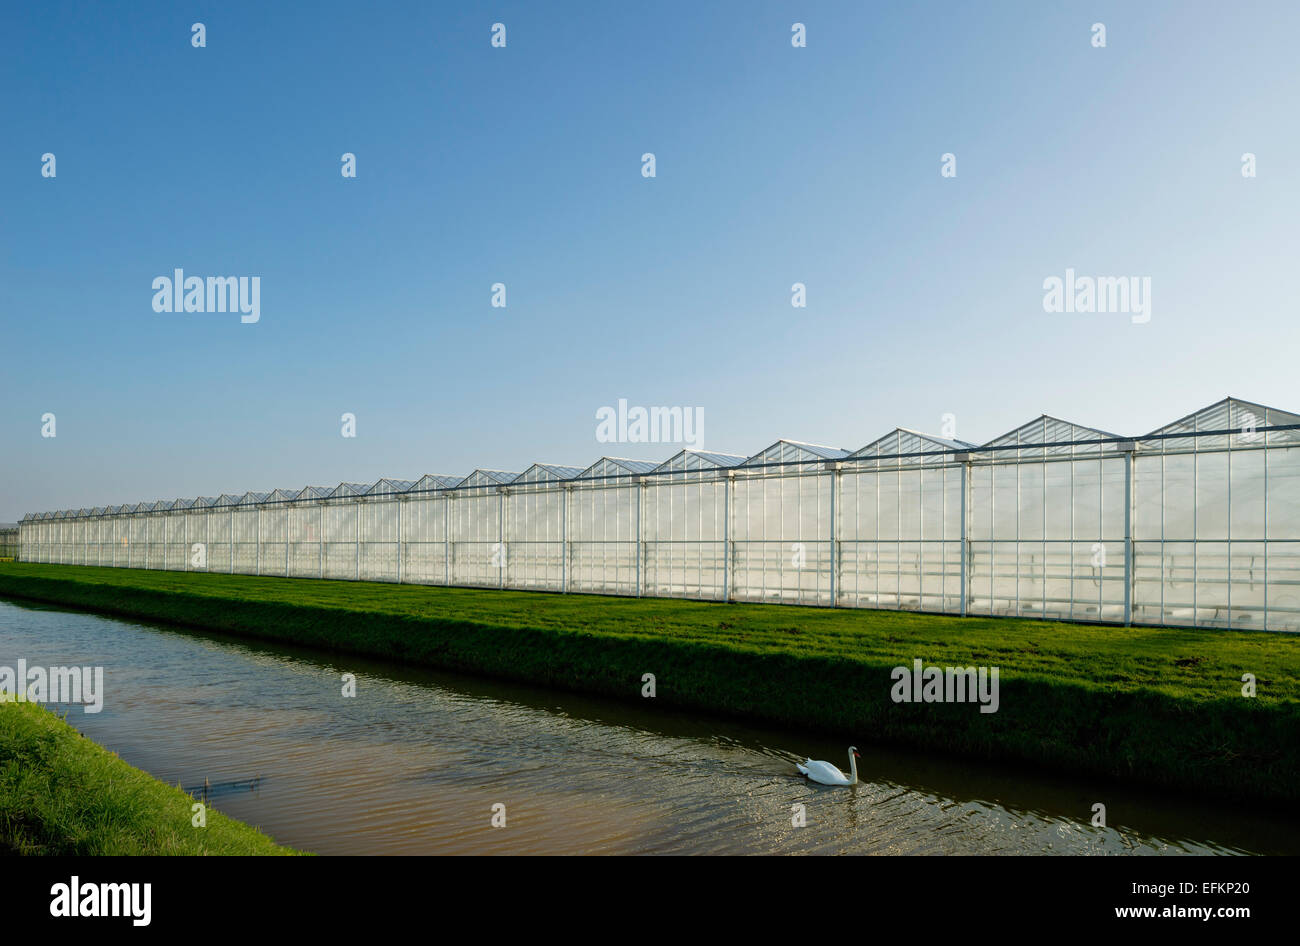 Angled view of canal and row of greenhouses - Stock Image